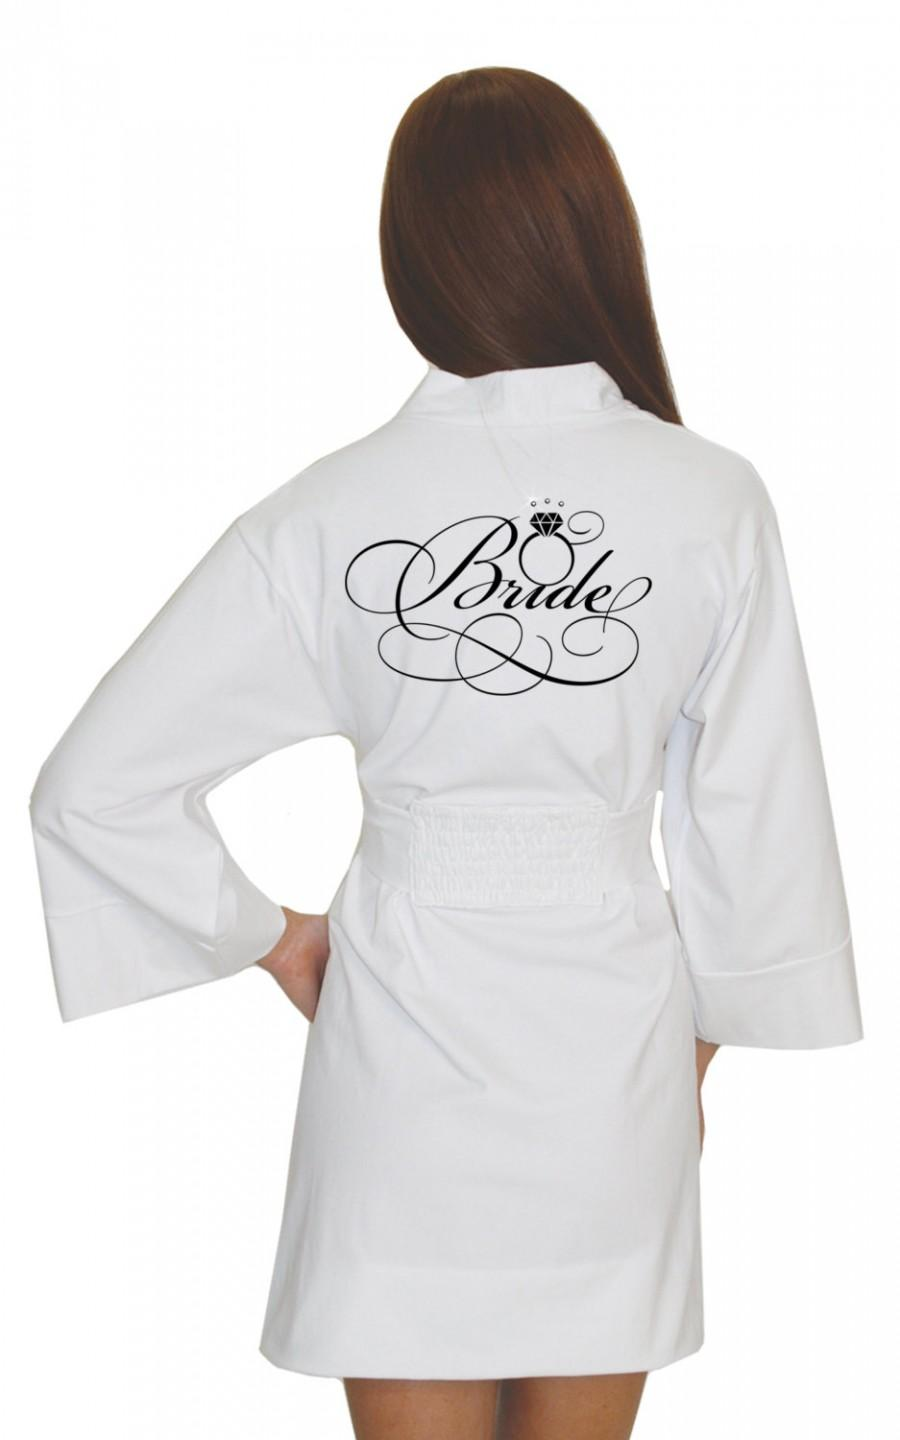 Mariage - White Bridal Robe, Bride Cotton Modal, Bridal Wedding Robe, Bridal Lingerie, wedding gift ideas, getting ready robe, honeymoon gift boudoir